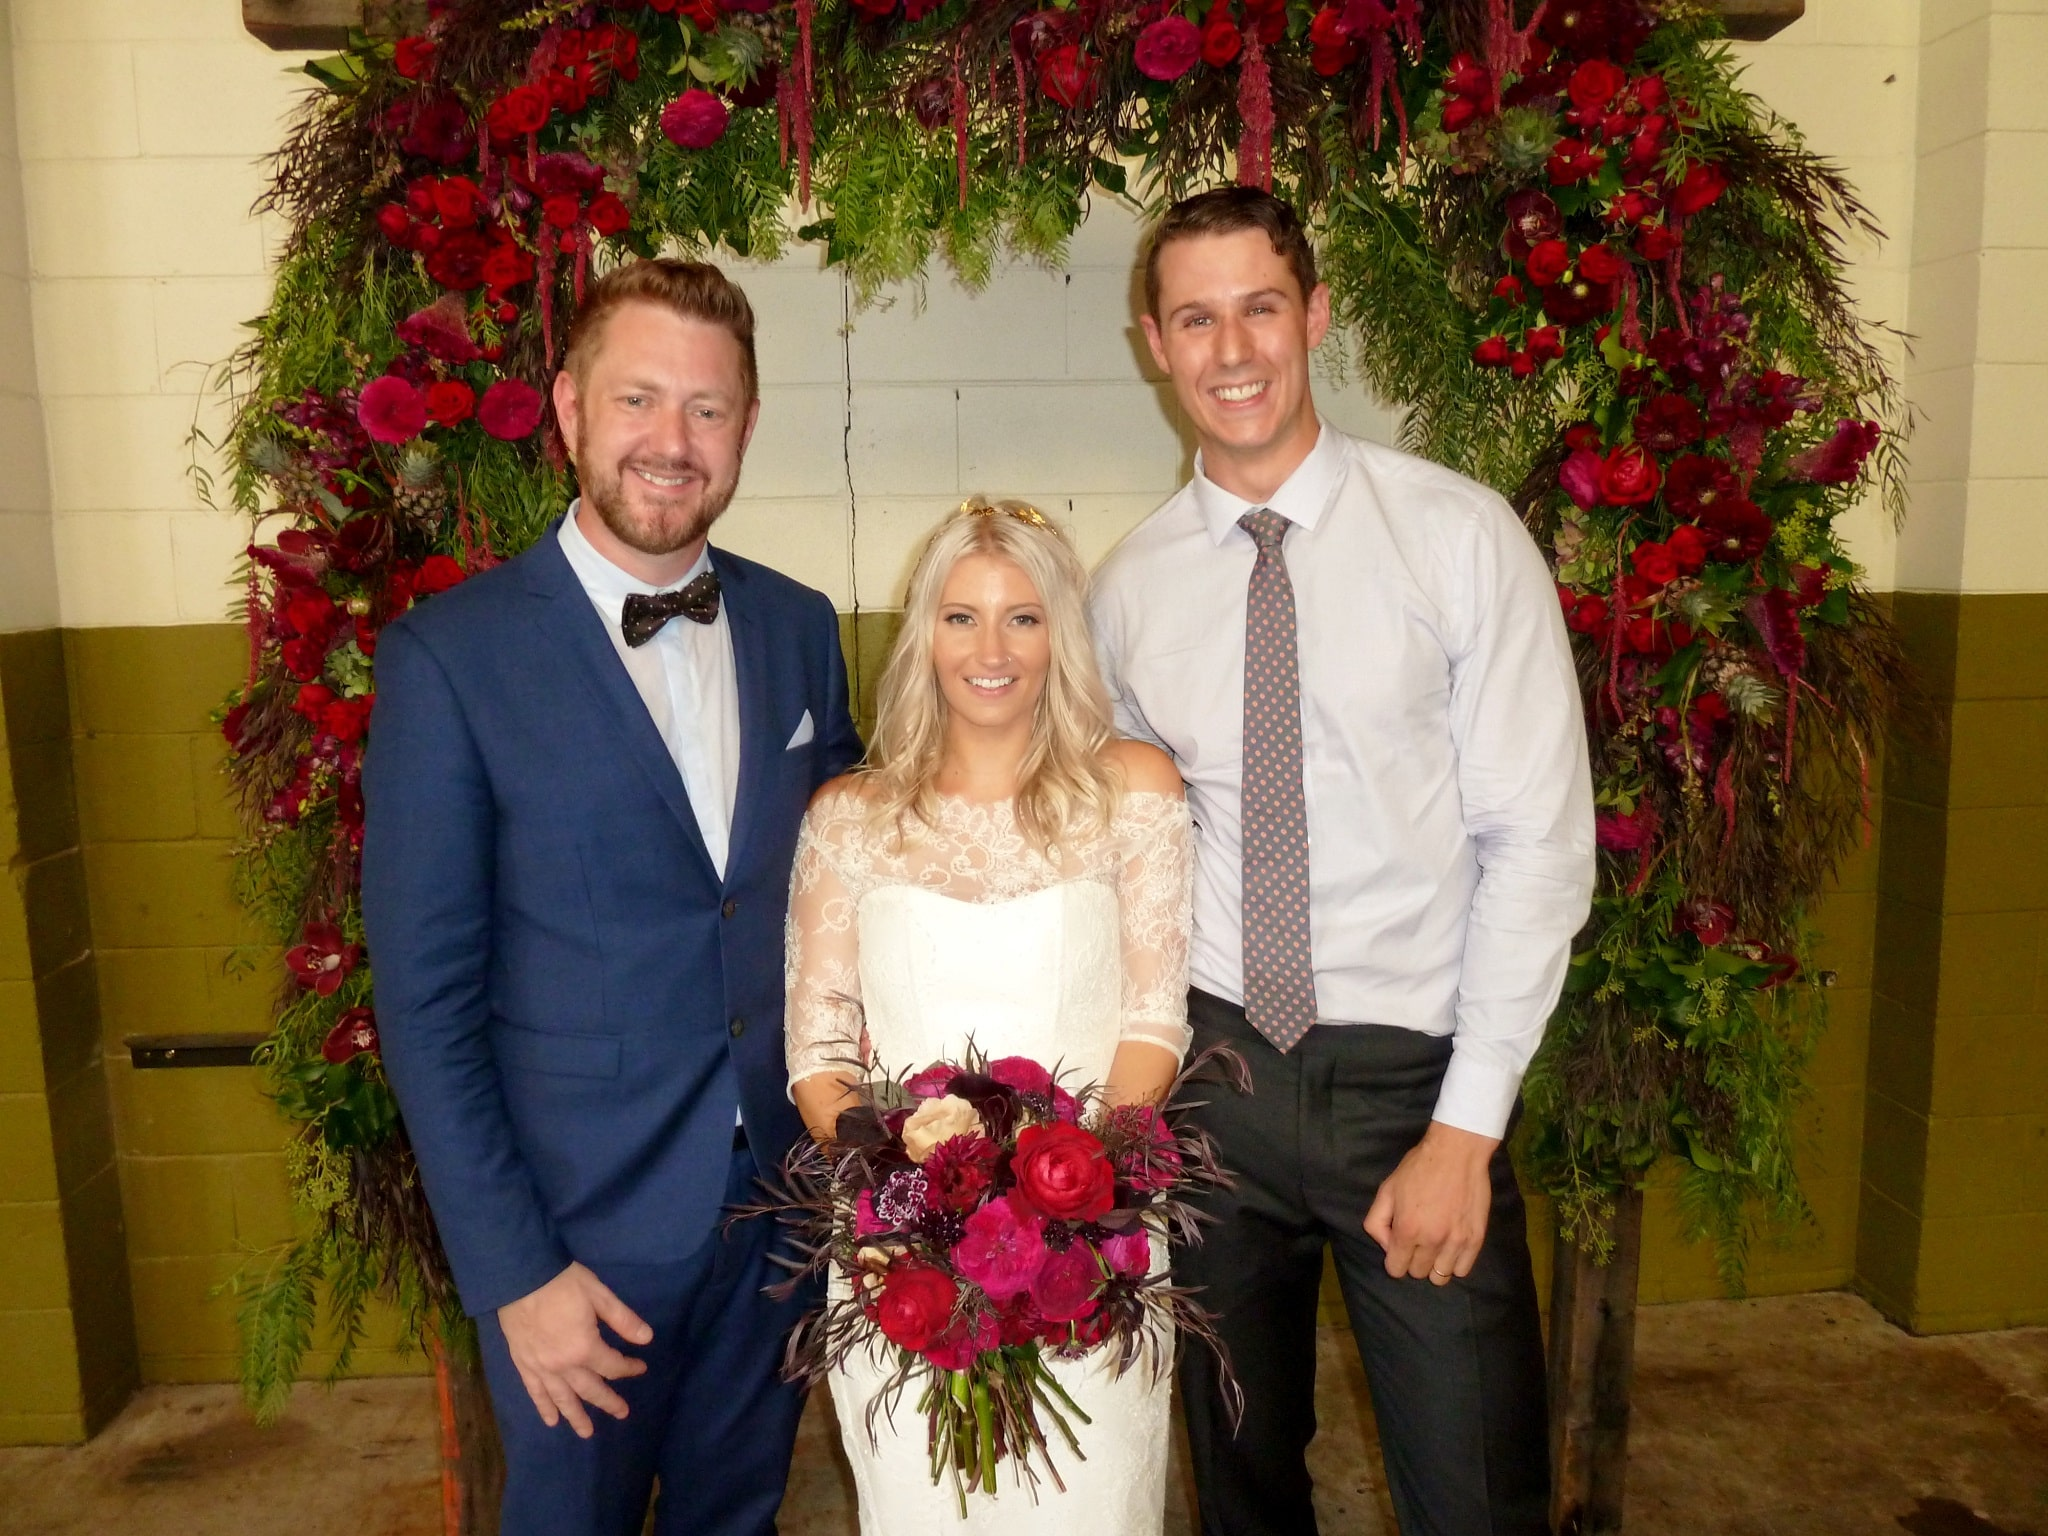 HIRES Joel and Lucy - Sydney Marriage Celebrant Stephen Lee